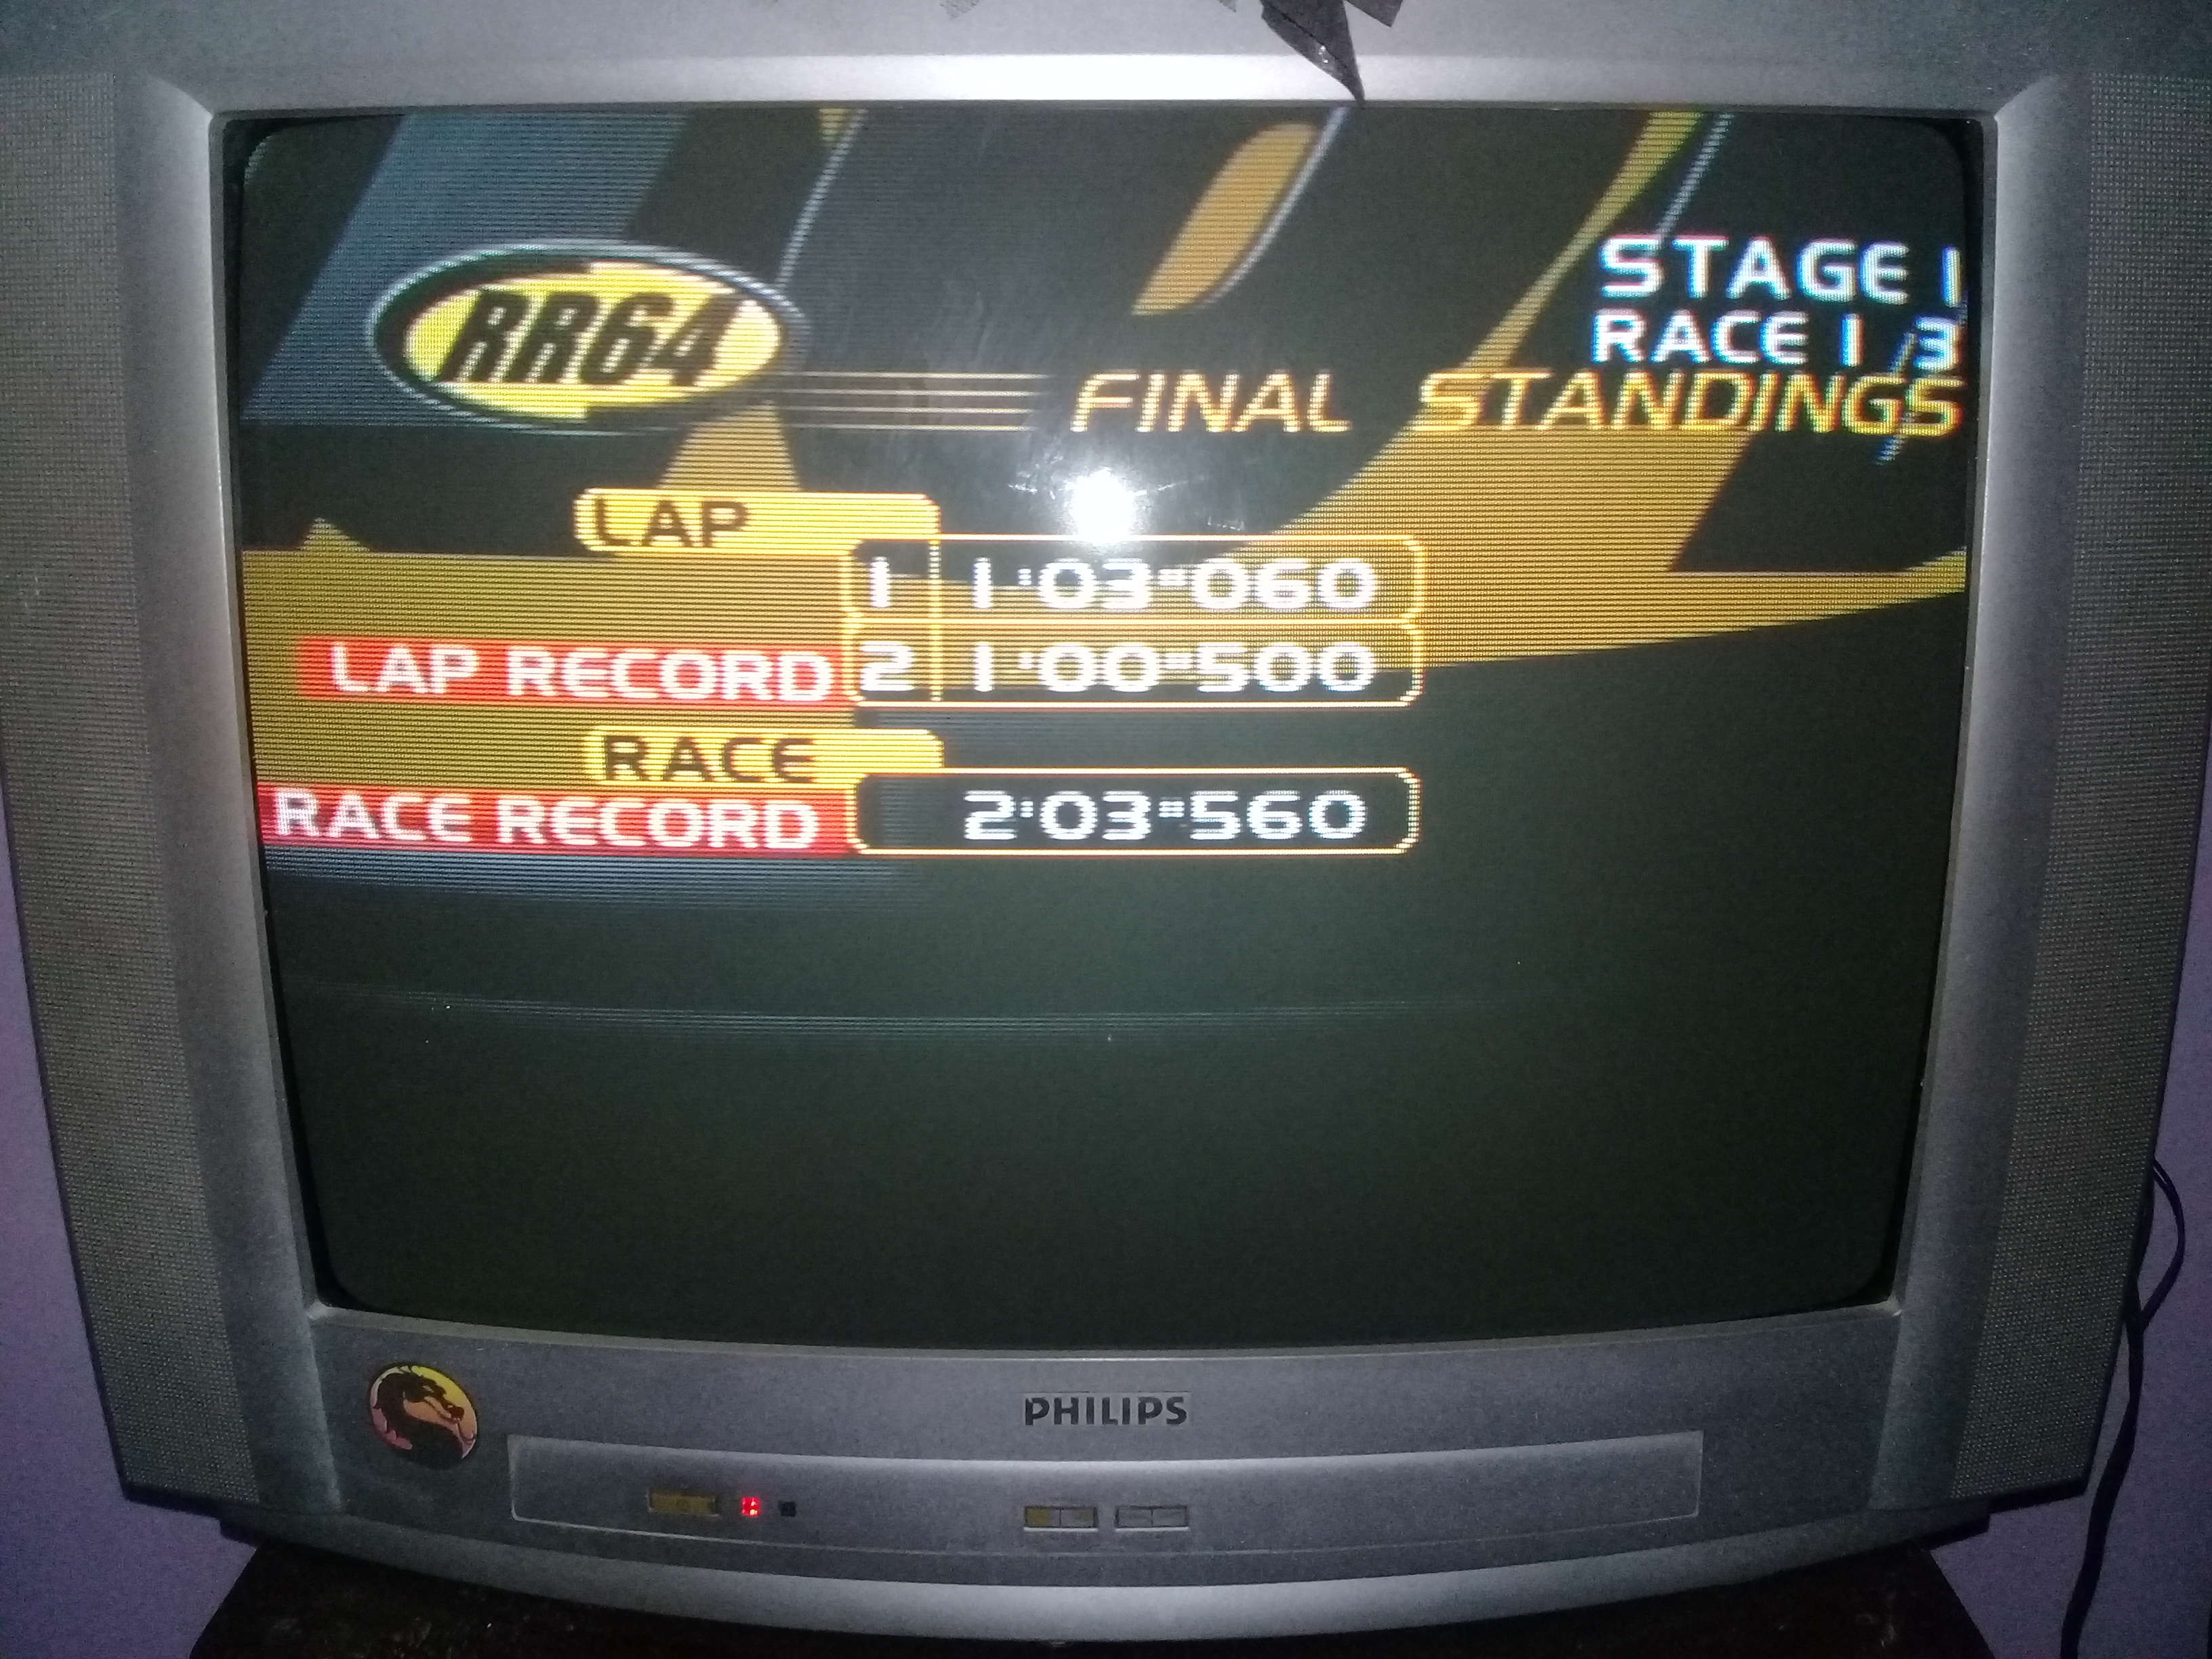 omargeddon: Ridge Racer 64: Time Attack [Ridge Racer Novice / Fastest Lap] (N64) 0:01:00.5 points on 2020-05-09 21:29:05